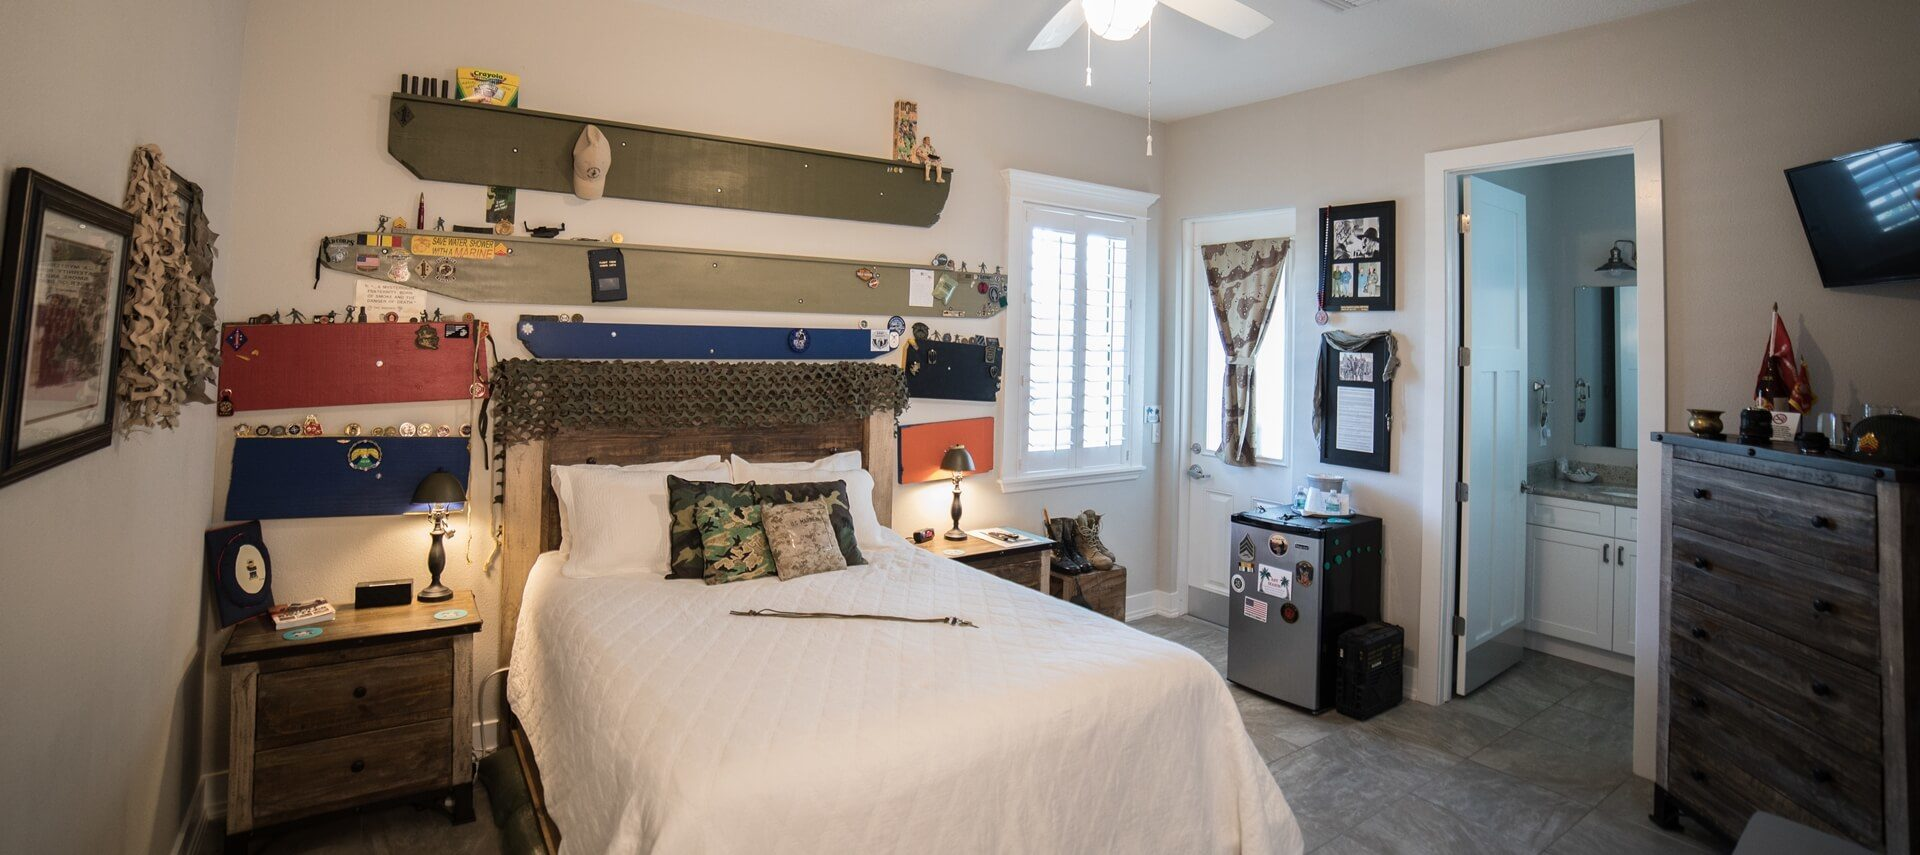 Guestroom with bed made up in white, shelves with military memorabilia, dresser and TV on the wall.